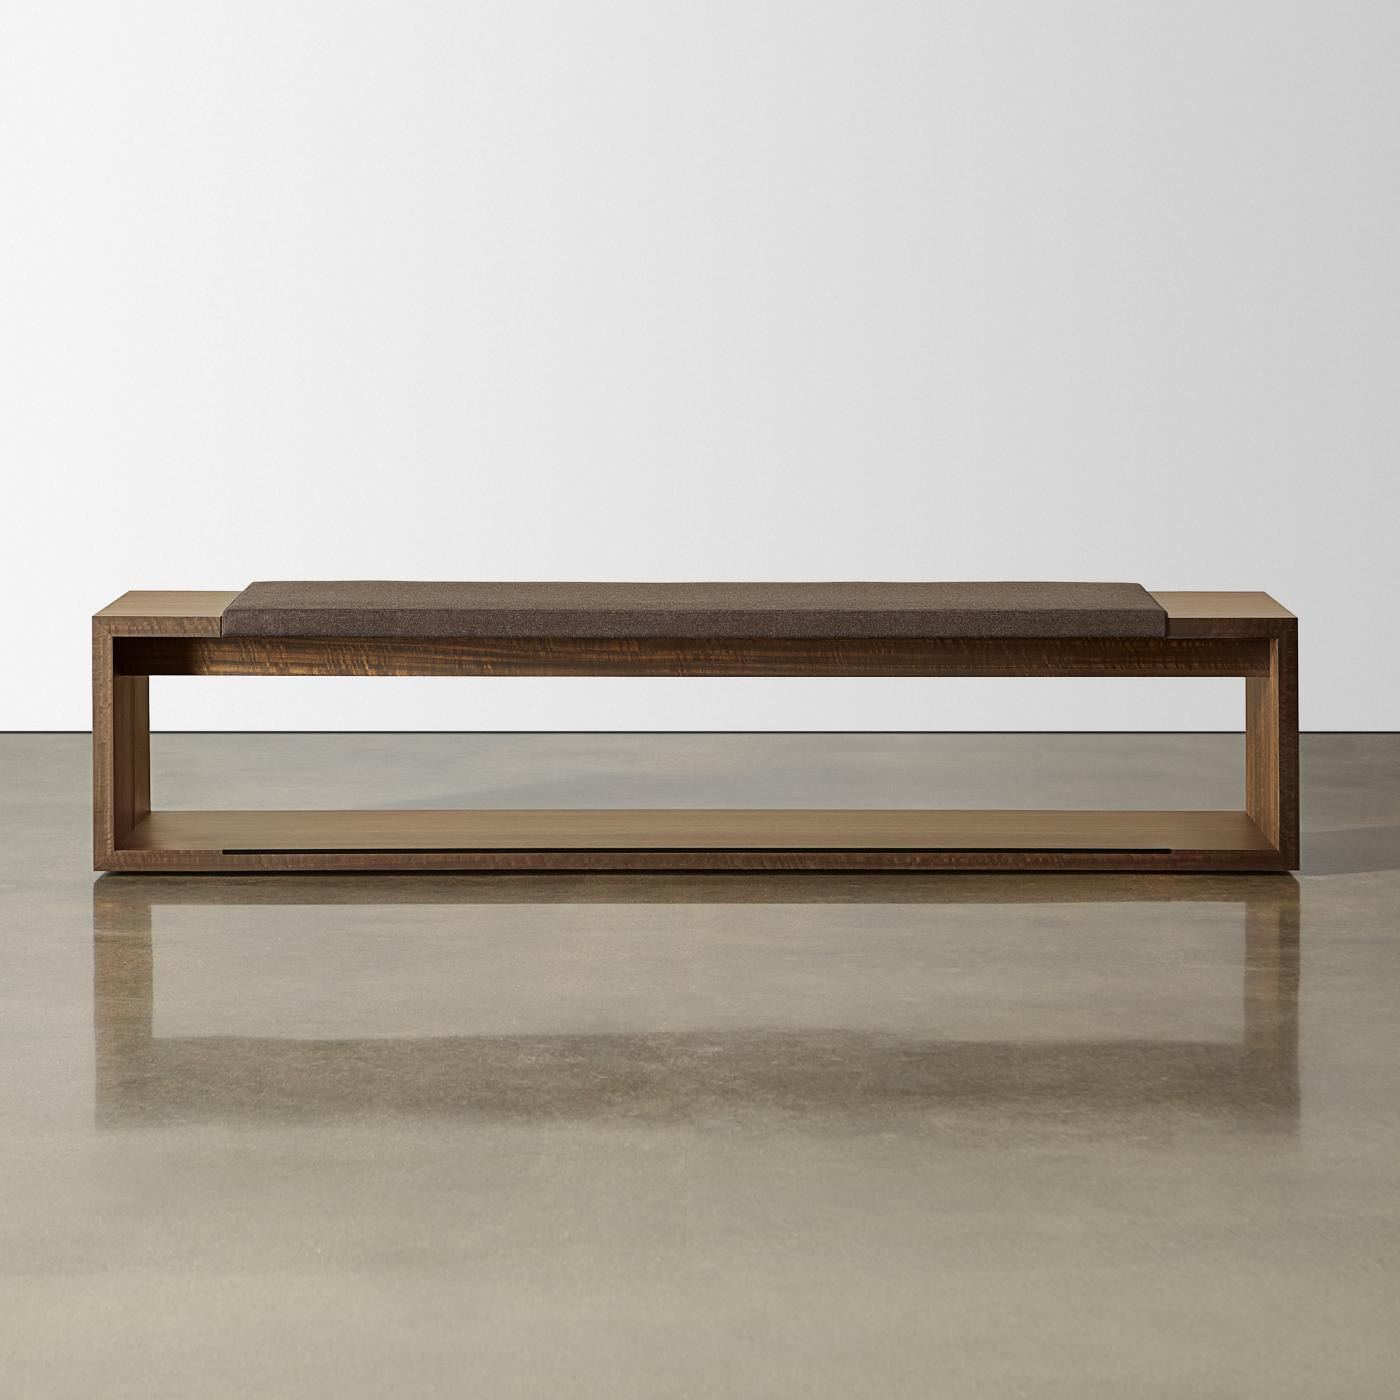 Each bench includes a gracious seating cushion and convenient table surfaces at each end of the bench.